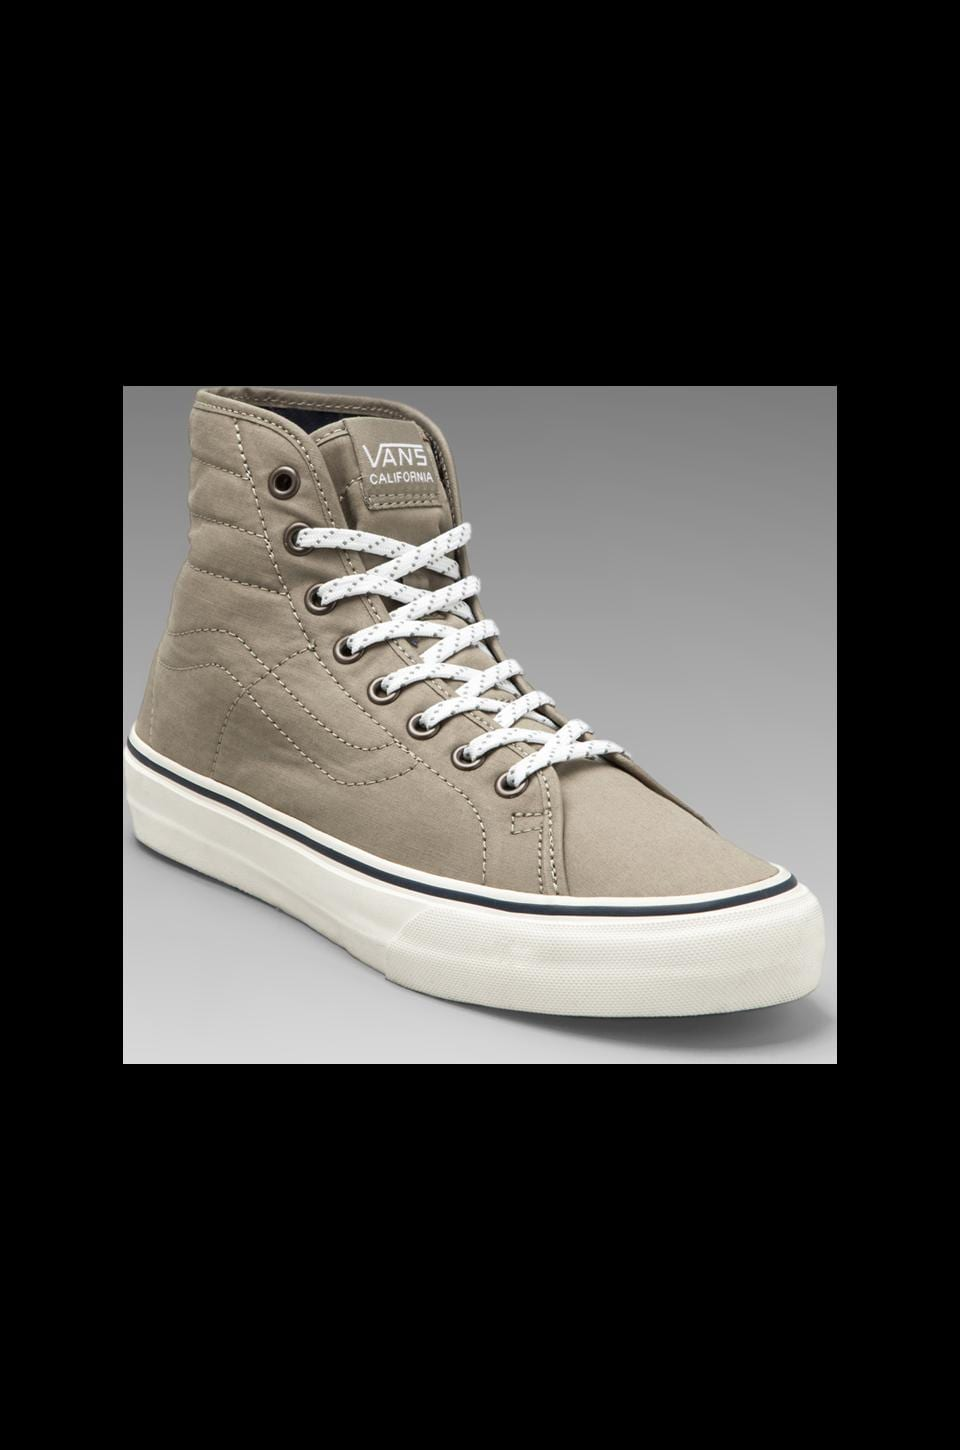 Vans California SK8-HI Binding in Laurel Oak